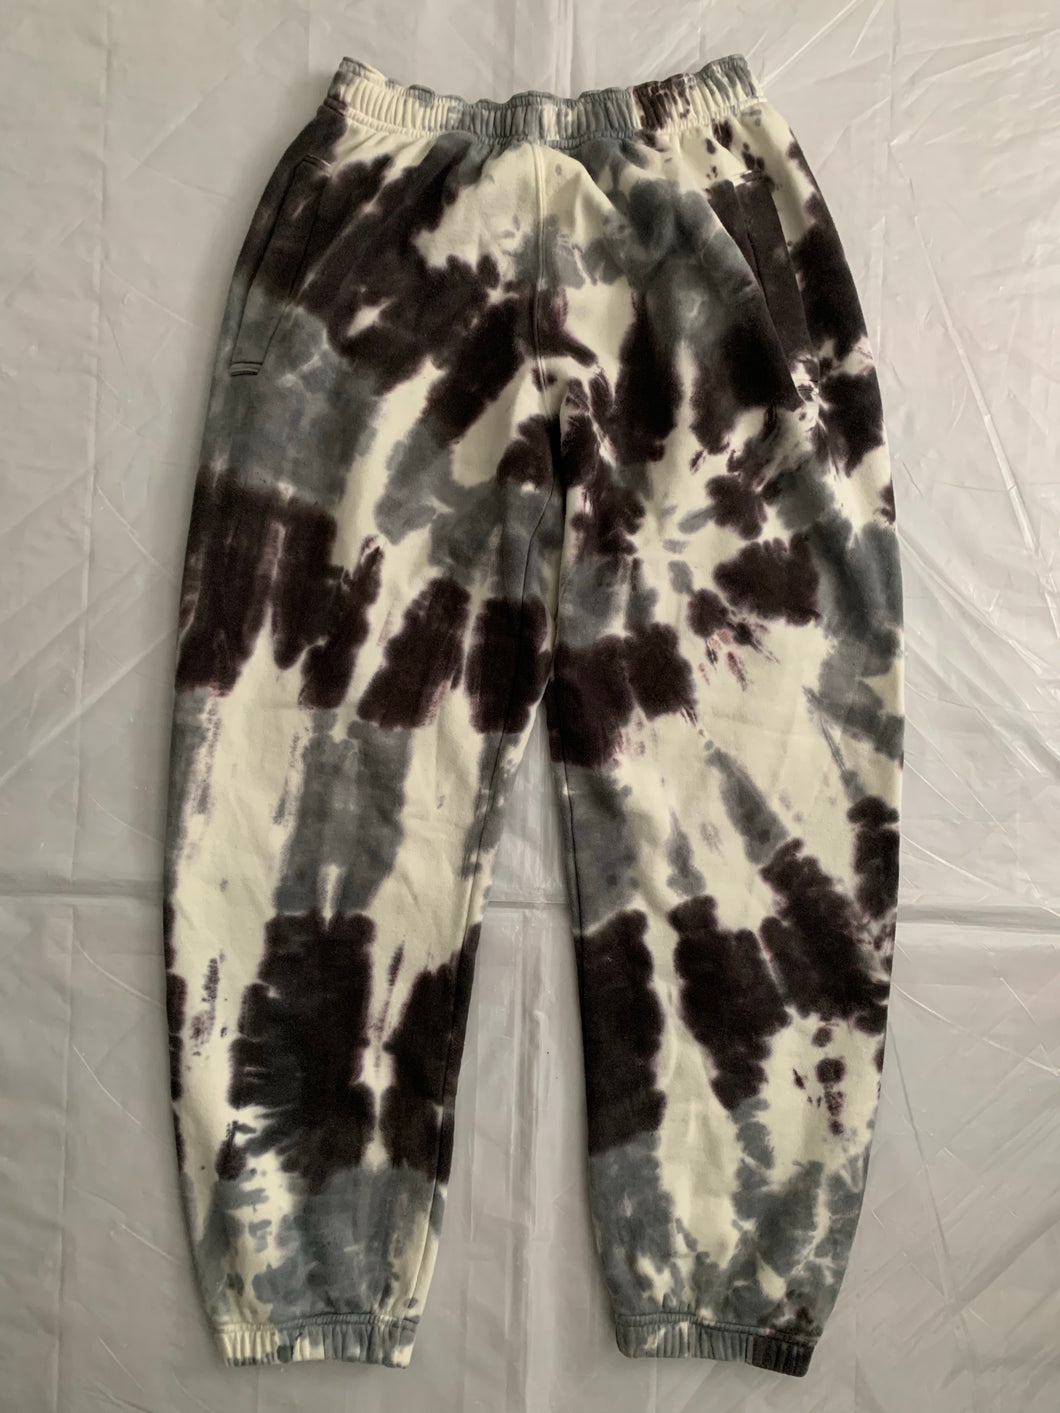 2000s Bernhard Willhelm Heavy Tie-dye Sweatpants - Size M